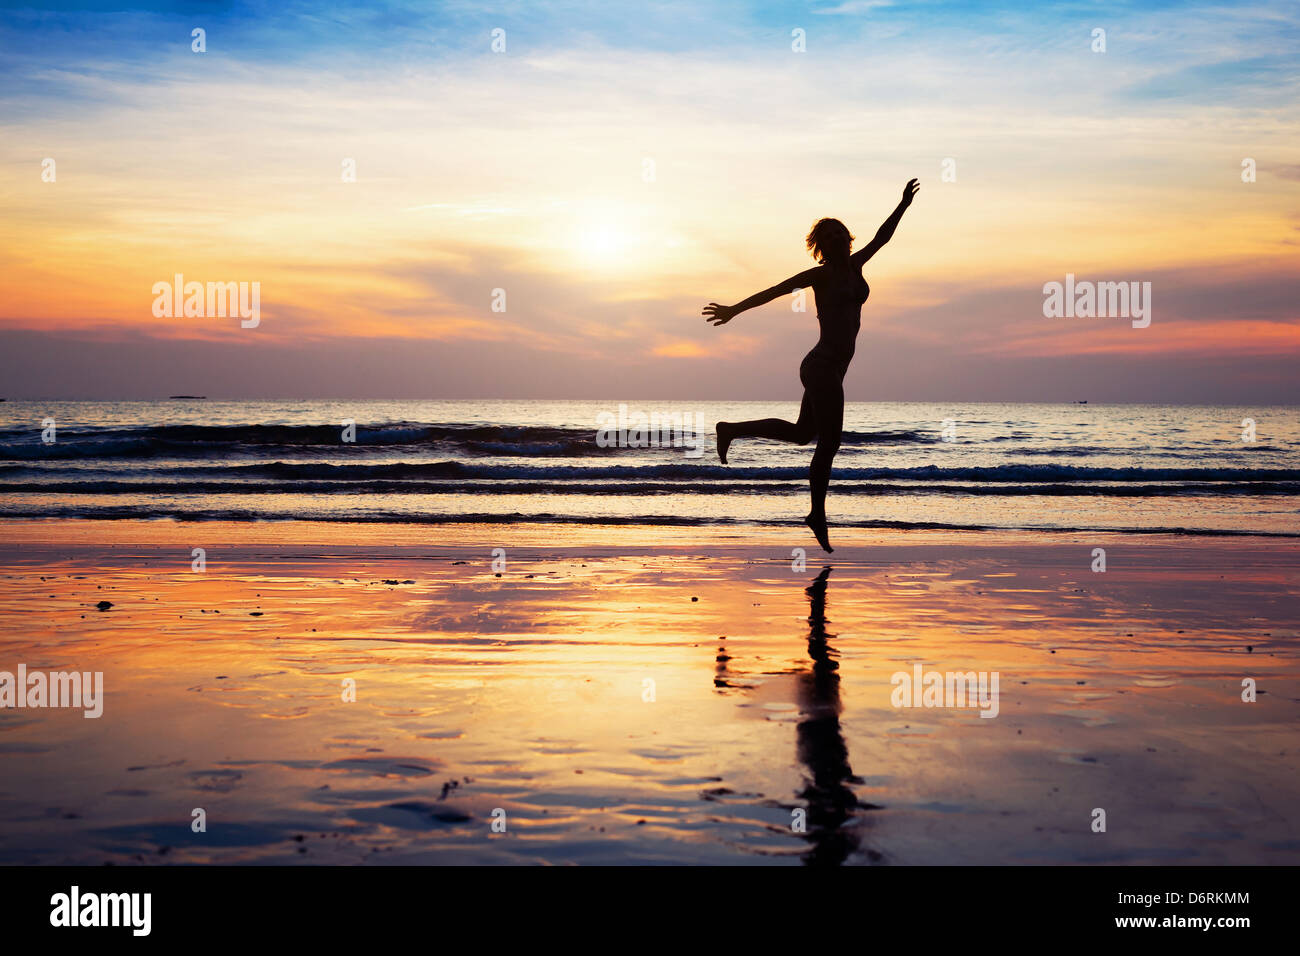 woman silhouette jumping on the beach at sunset - Stock Image